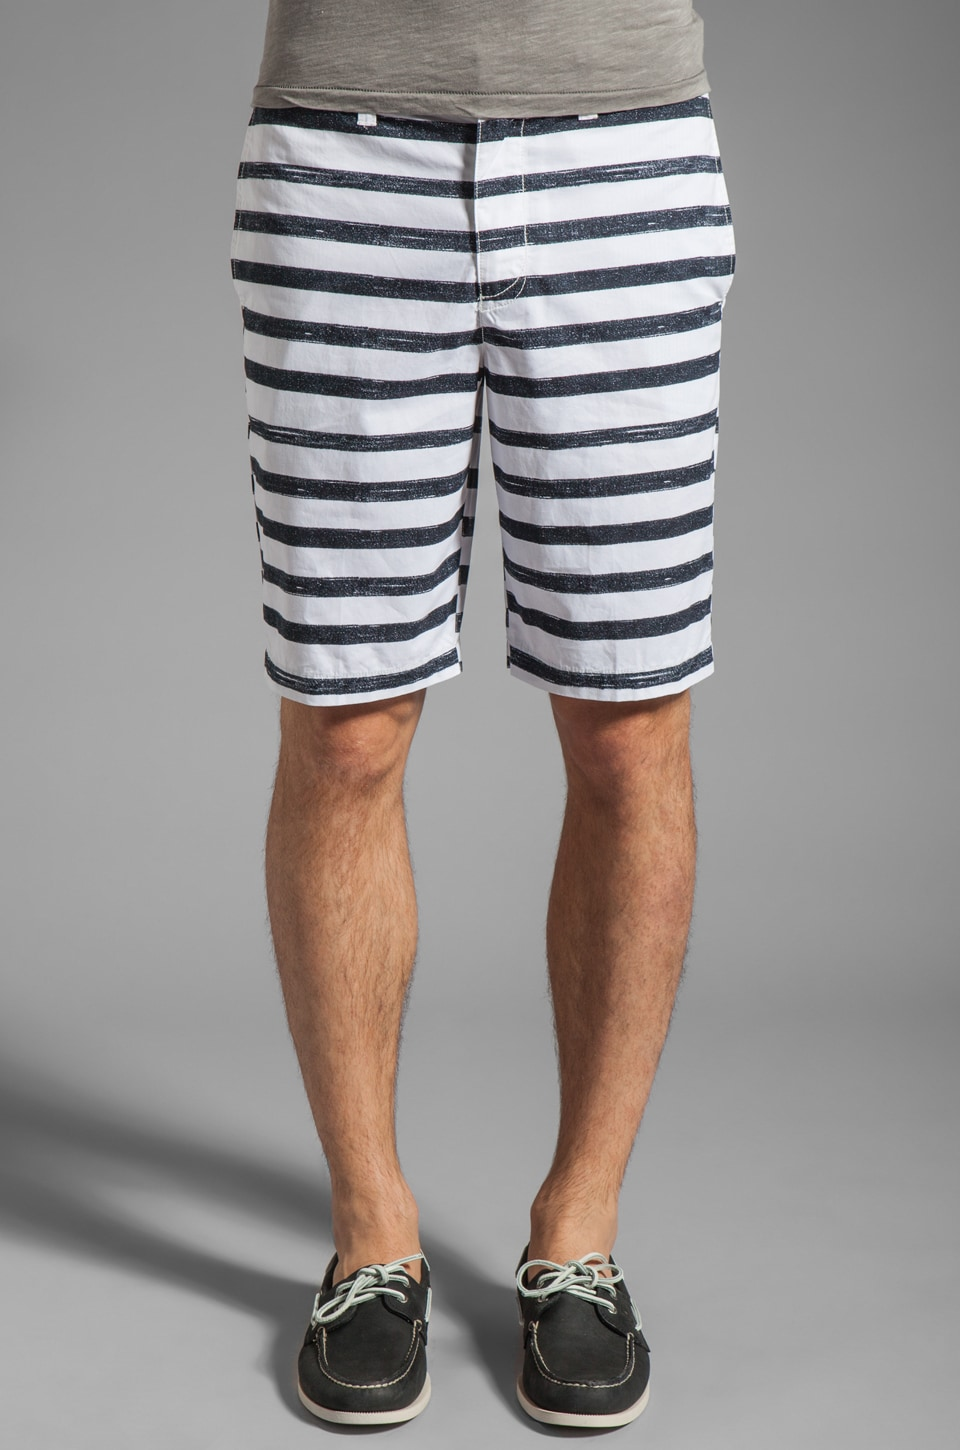 Penguin Sailor Short Margate Fit Short in Bright White